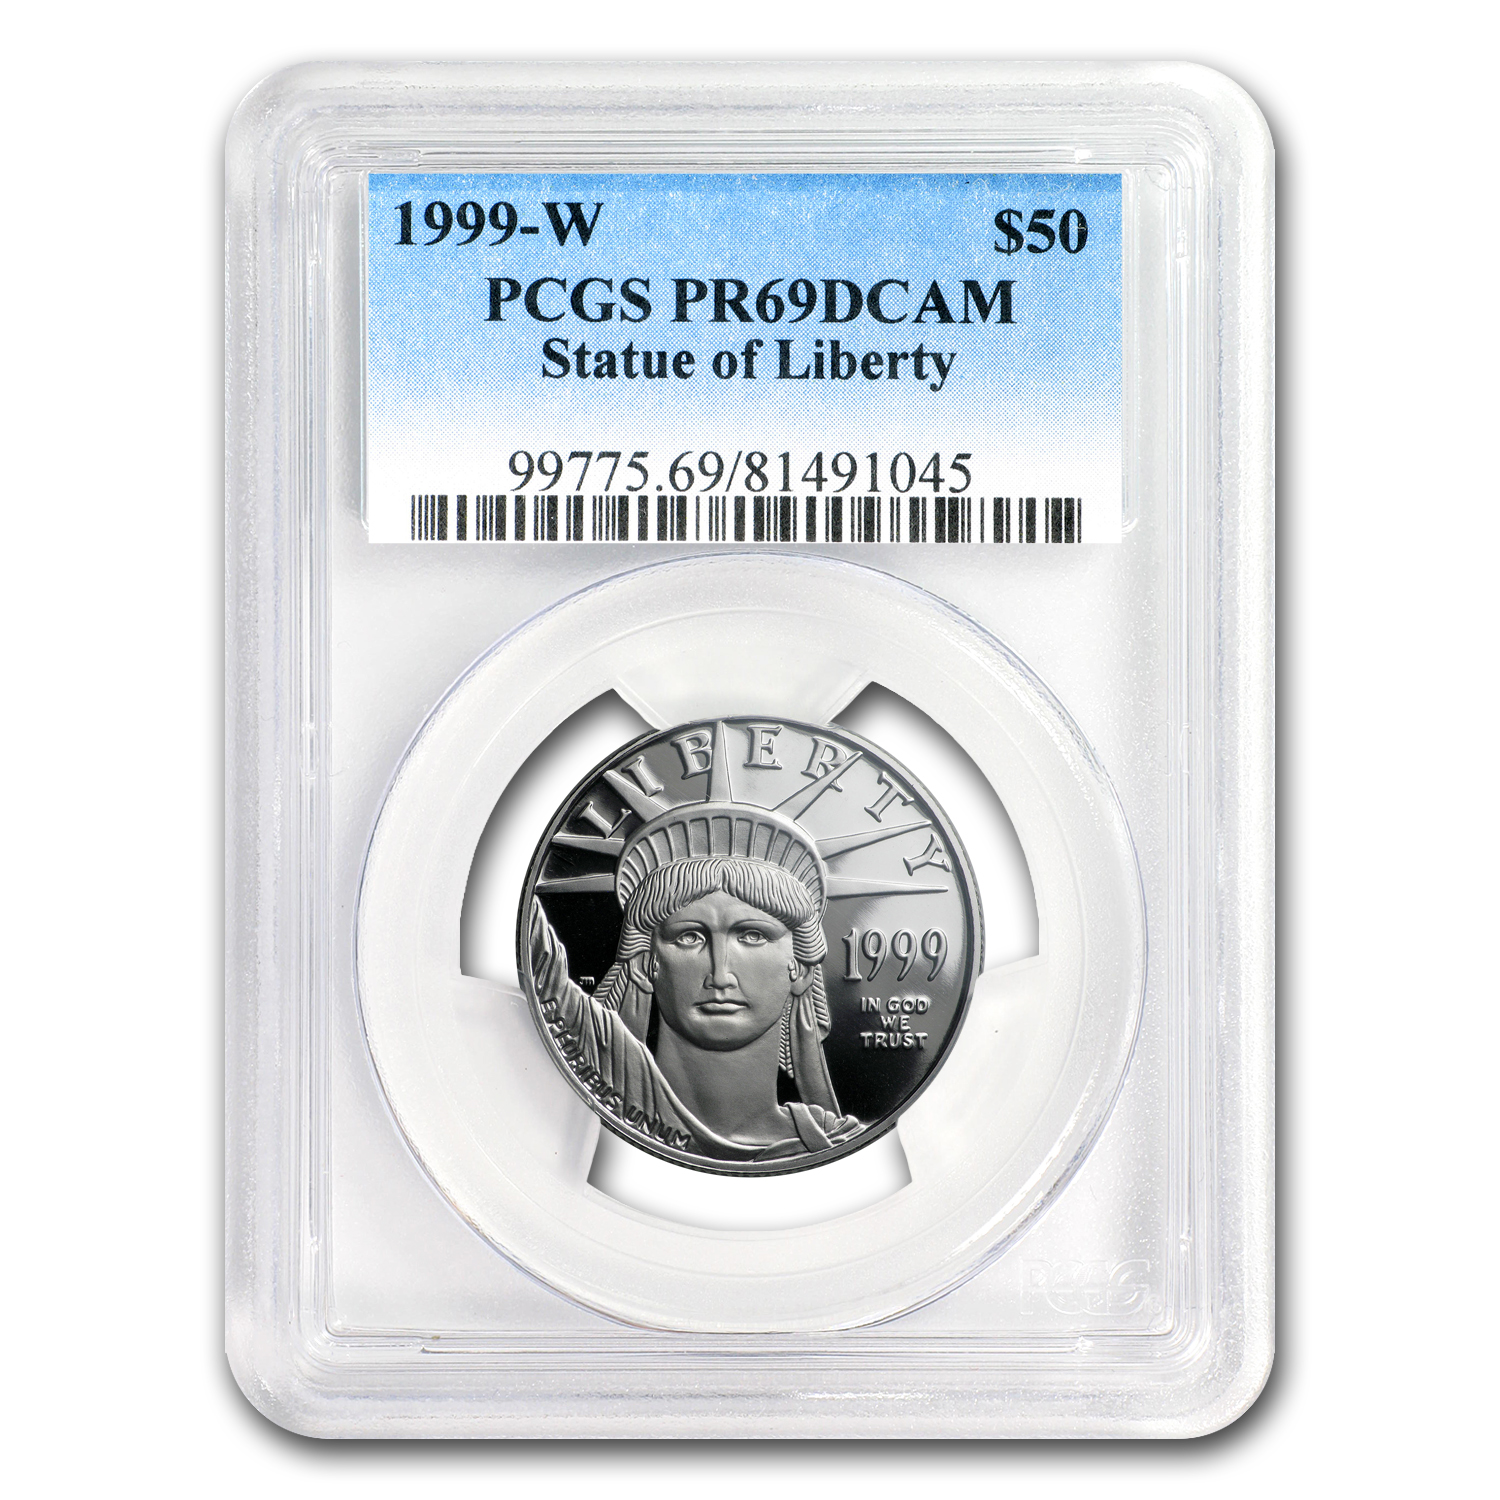 1999-W 1/2 oz Proof Platinum American Eagle PR-69 PCGS